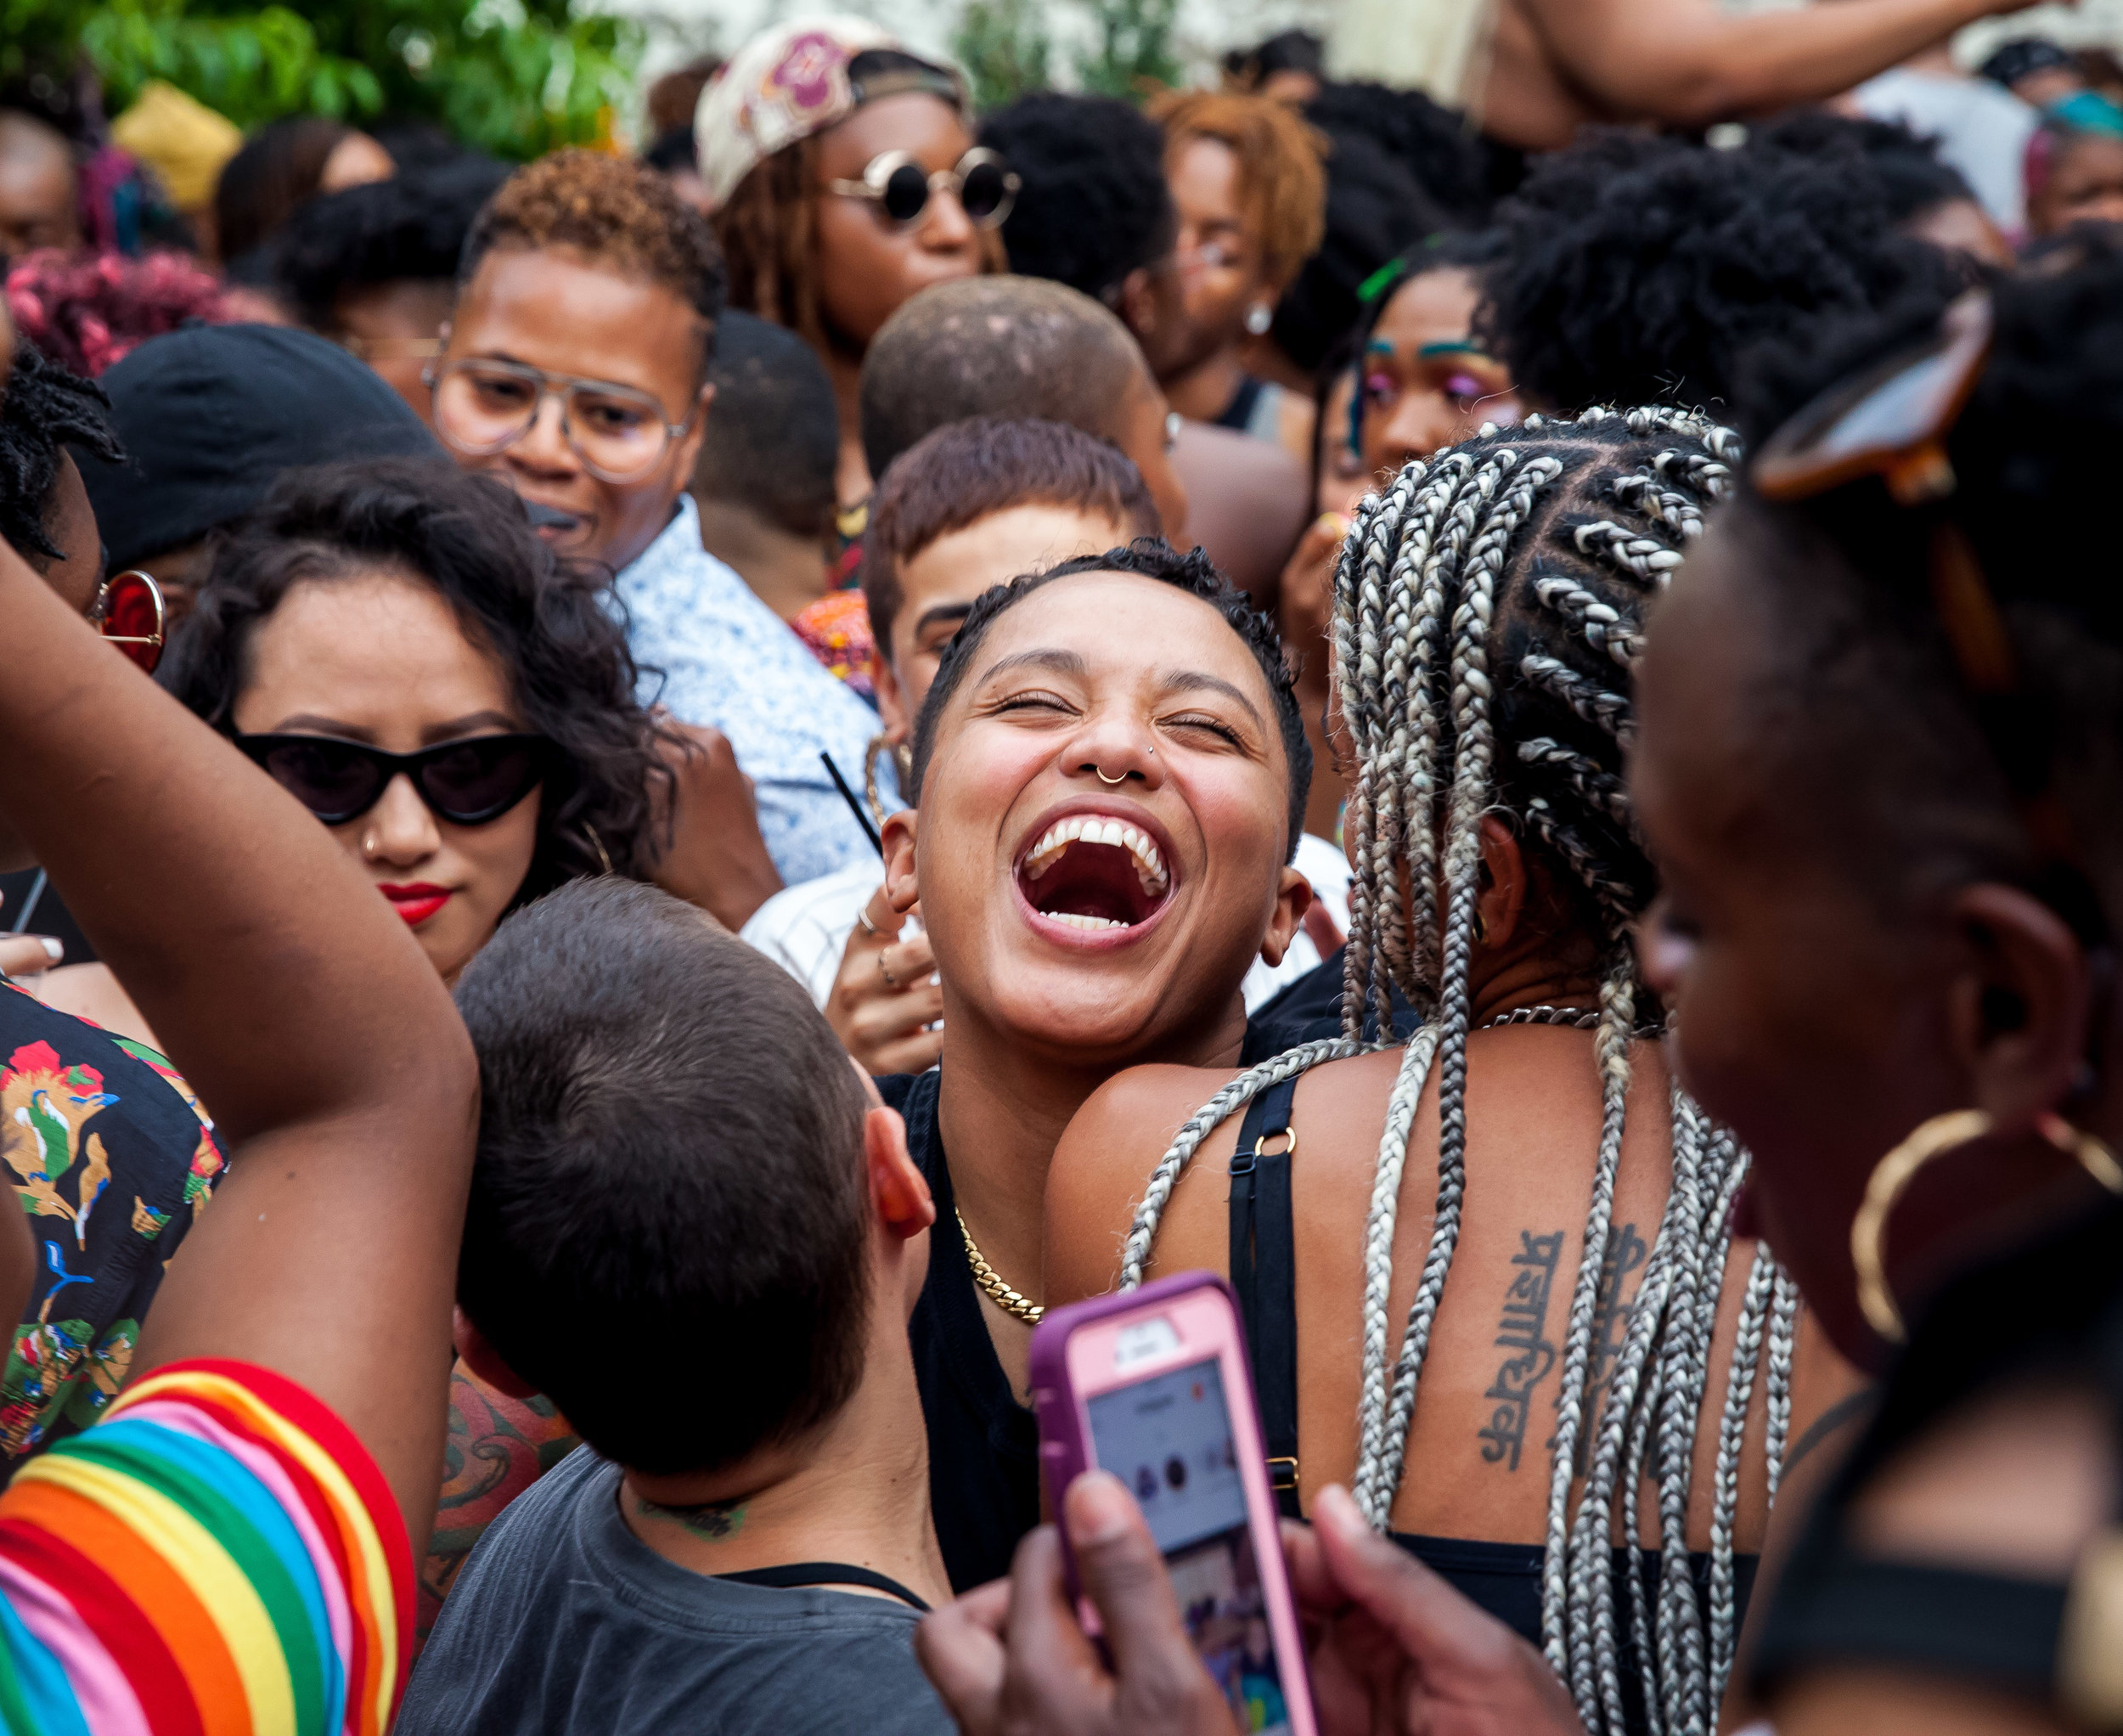 JOY_GAY PRIDE_EDITS-6.24.2018 (9 of 9).jpg